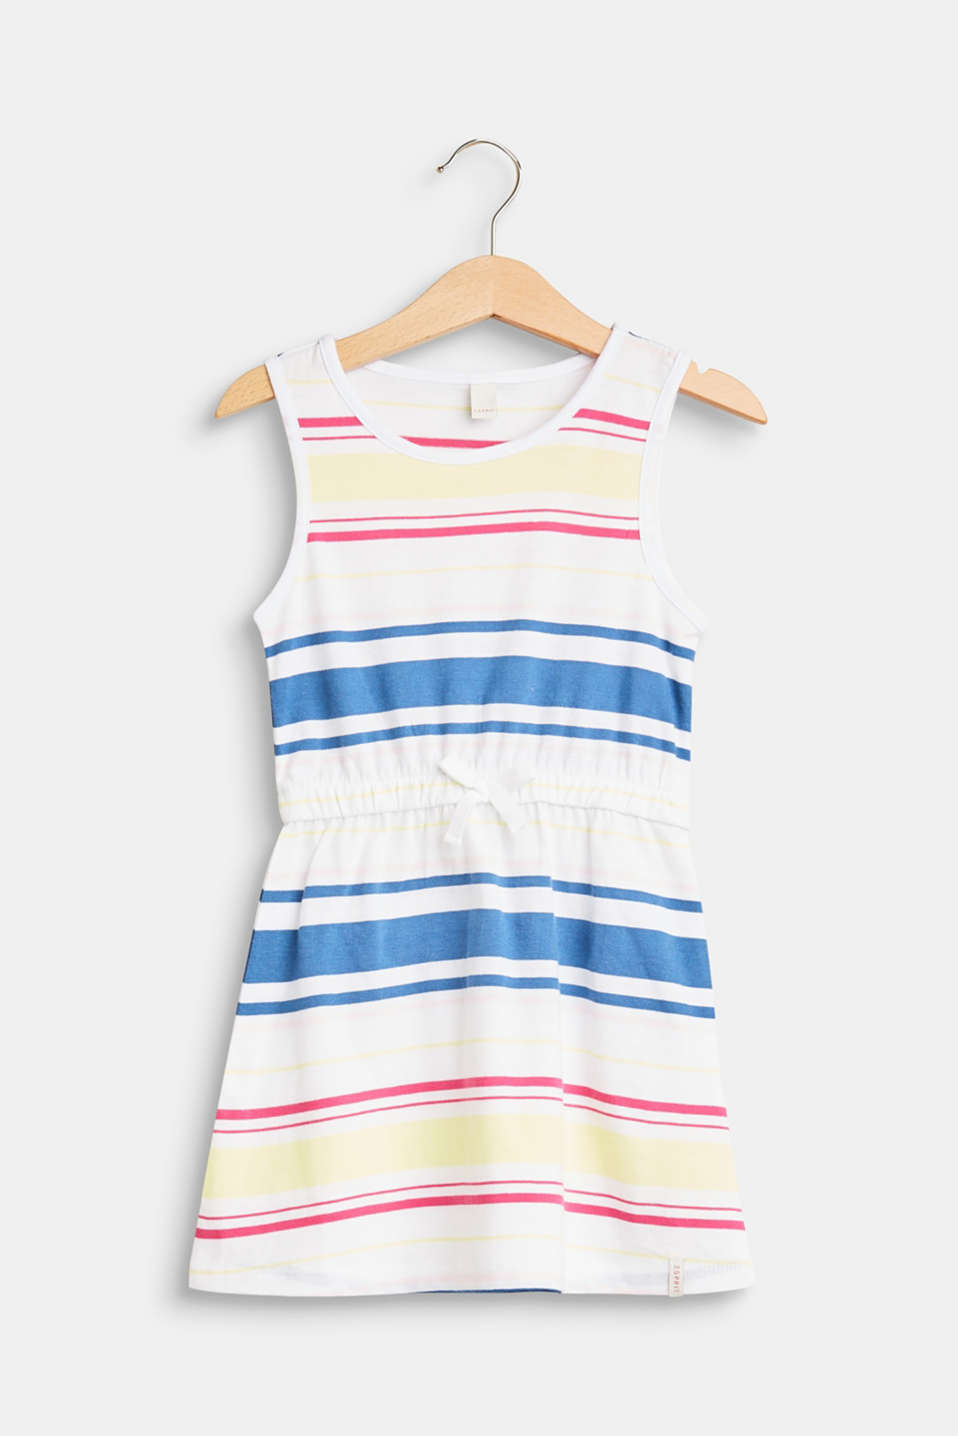 Esprit - Striped vest-style dress made of cotton